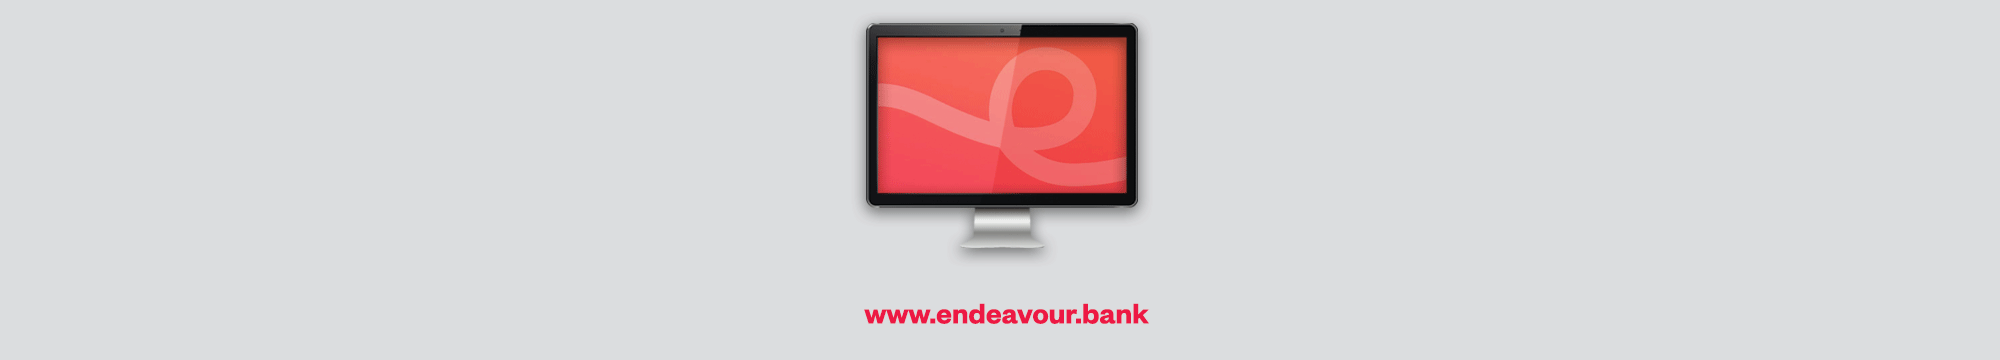 www.endeavour.bank